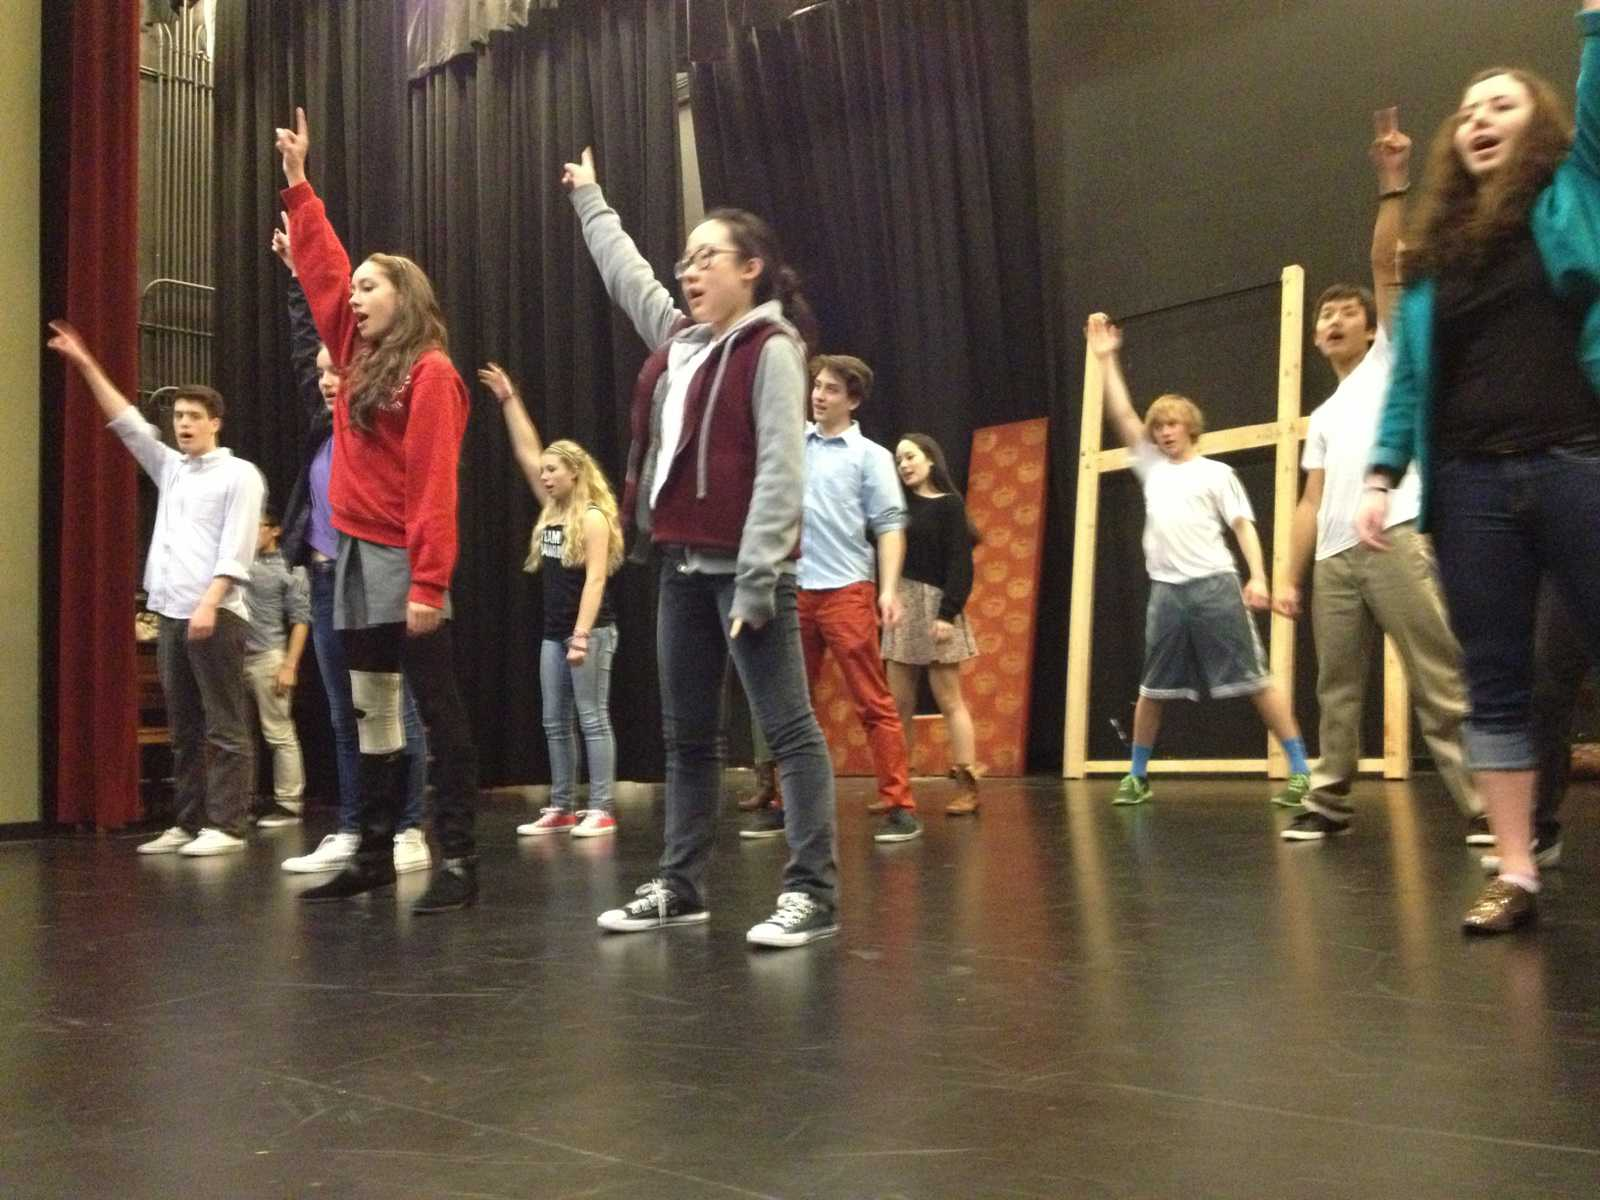 """Members of the cast of """"In the Heights"""" practice the choreography to the musical number """"Carnival."""" The play will premiere on March 13 and runs through the weekend."""